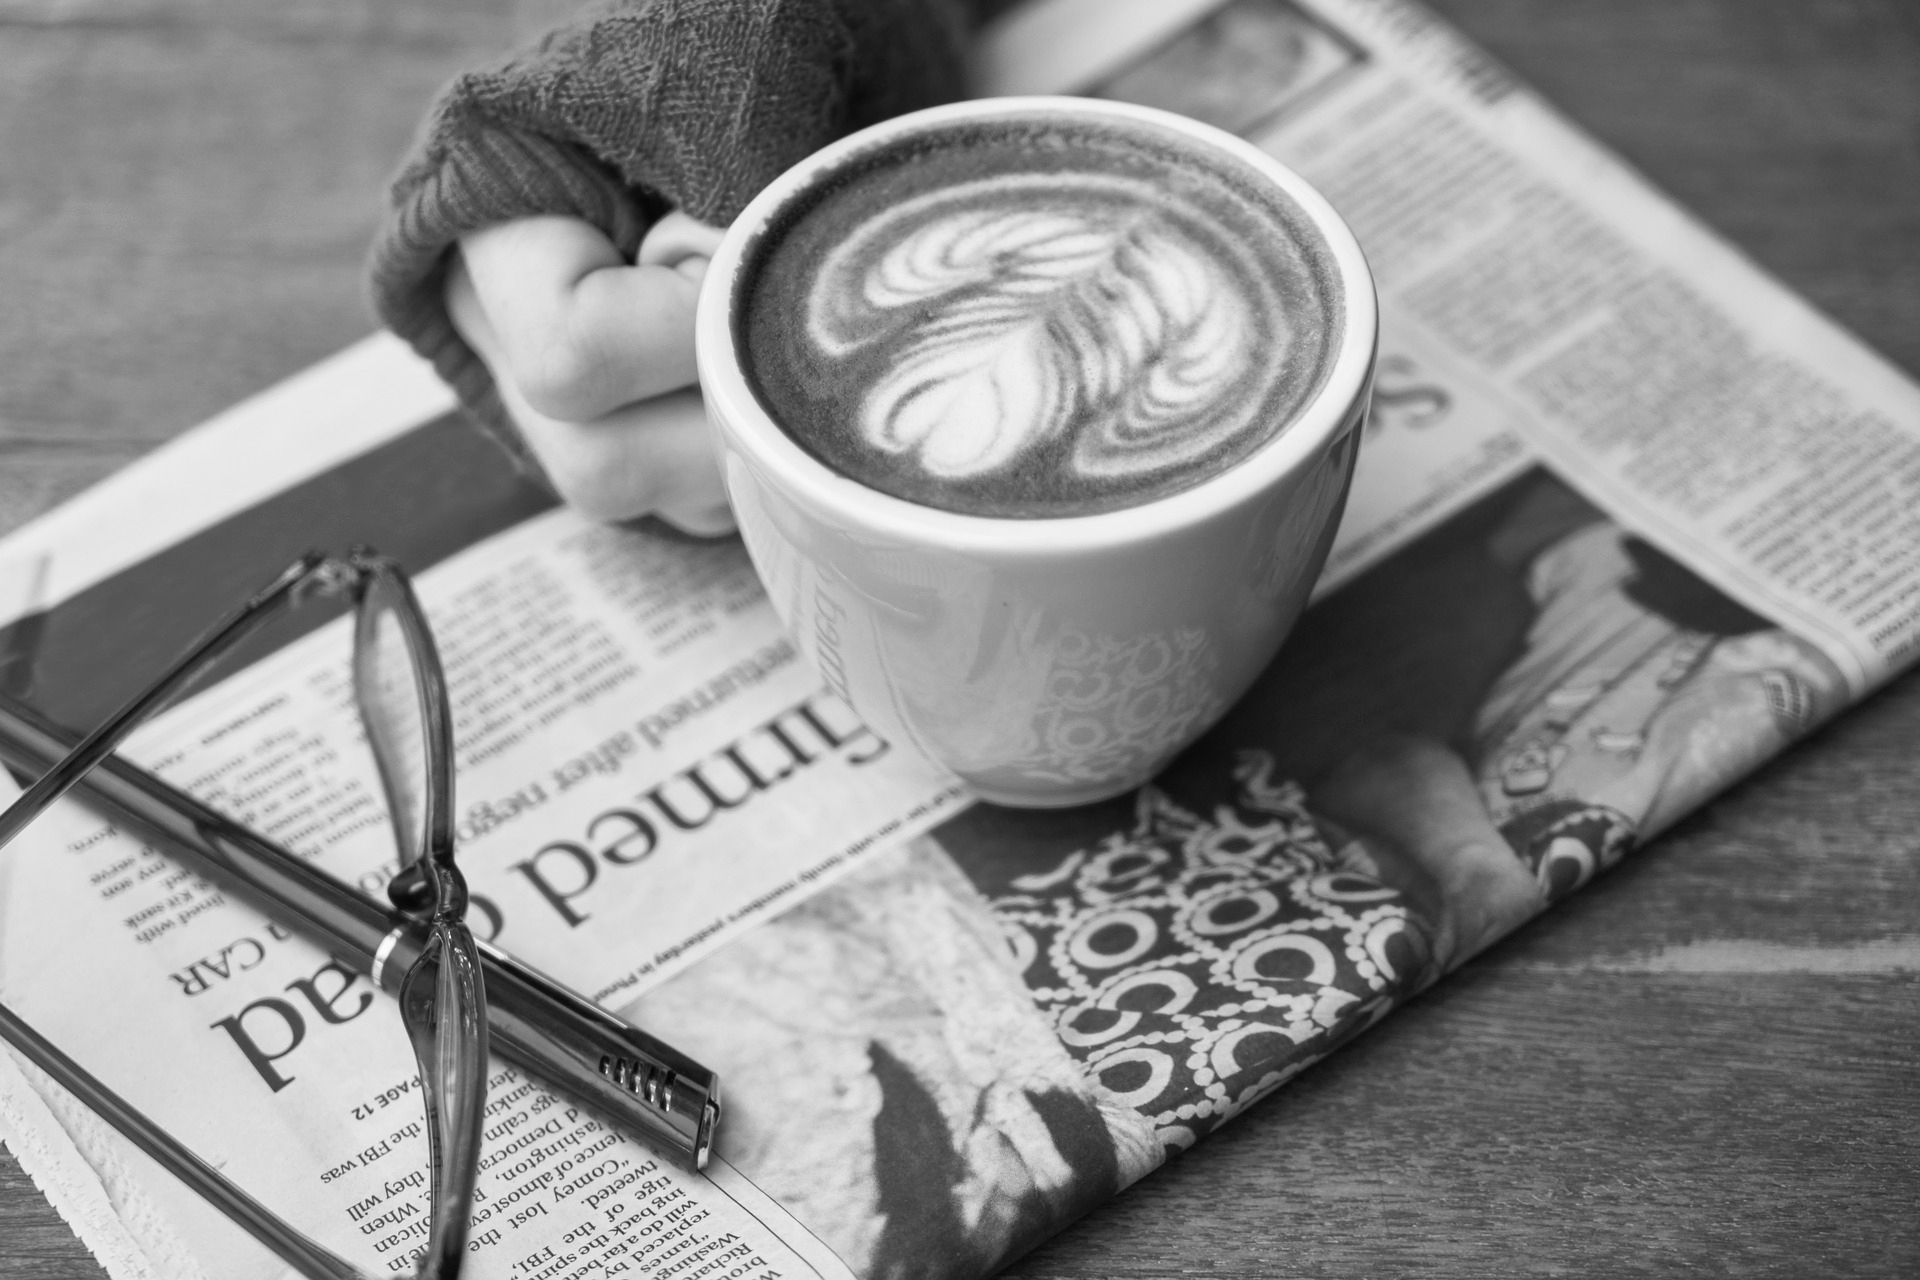 A hand holds a latte on top of a newspaper